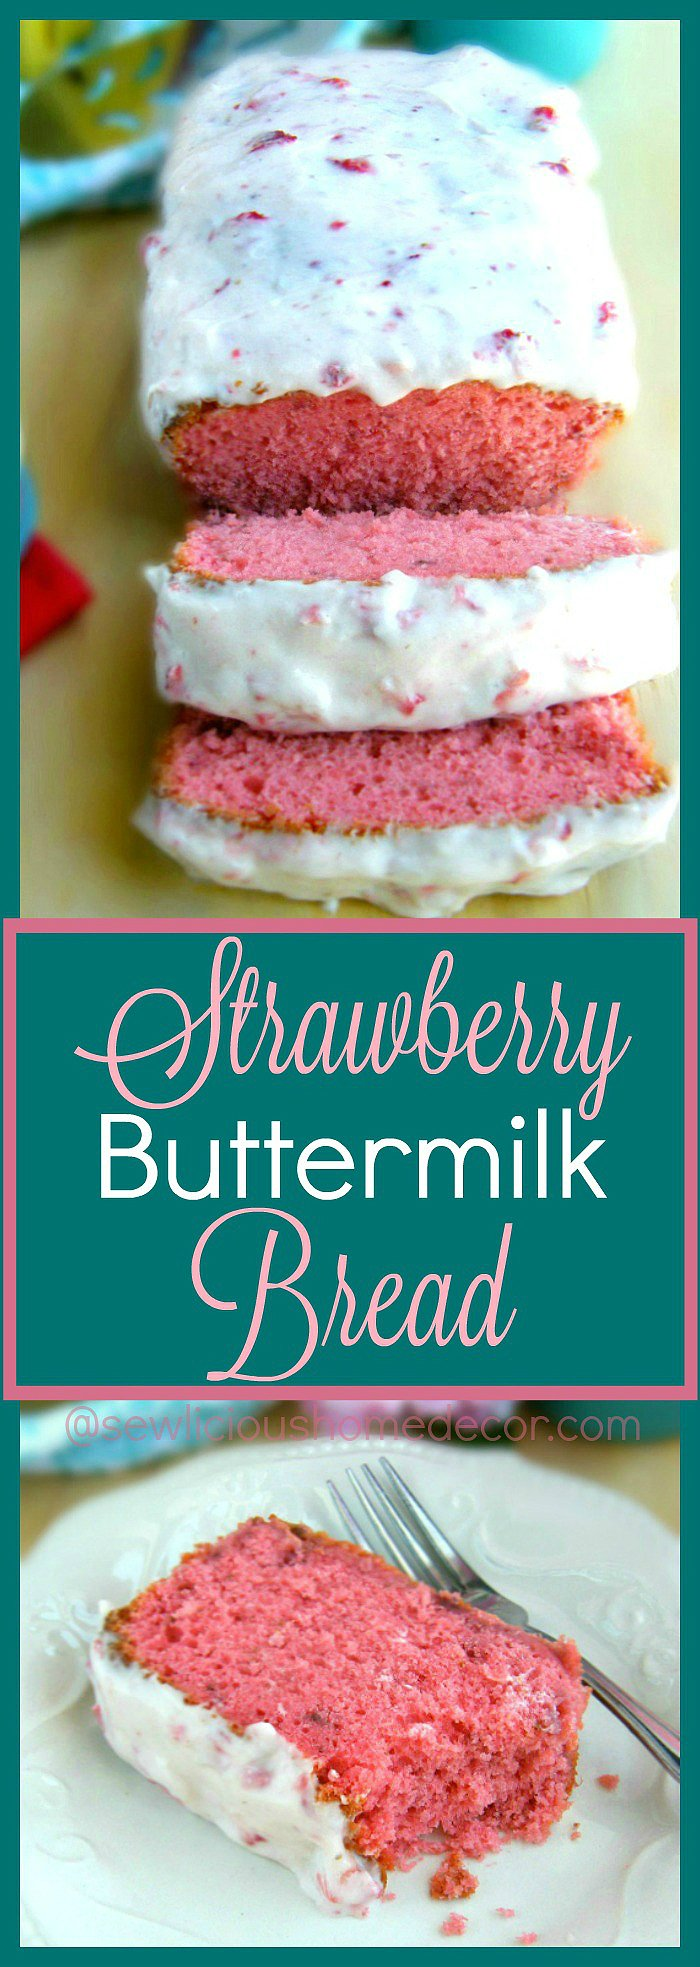 Homemade Buttermilk Strawberry Bread with strawberry cream cheese icing. sewlicioushomedecor.com